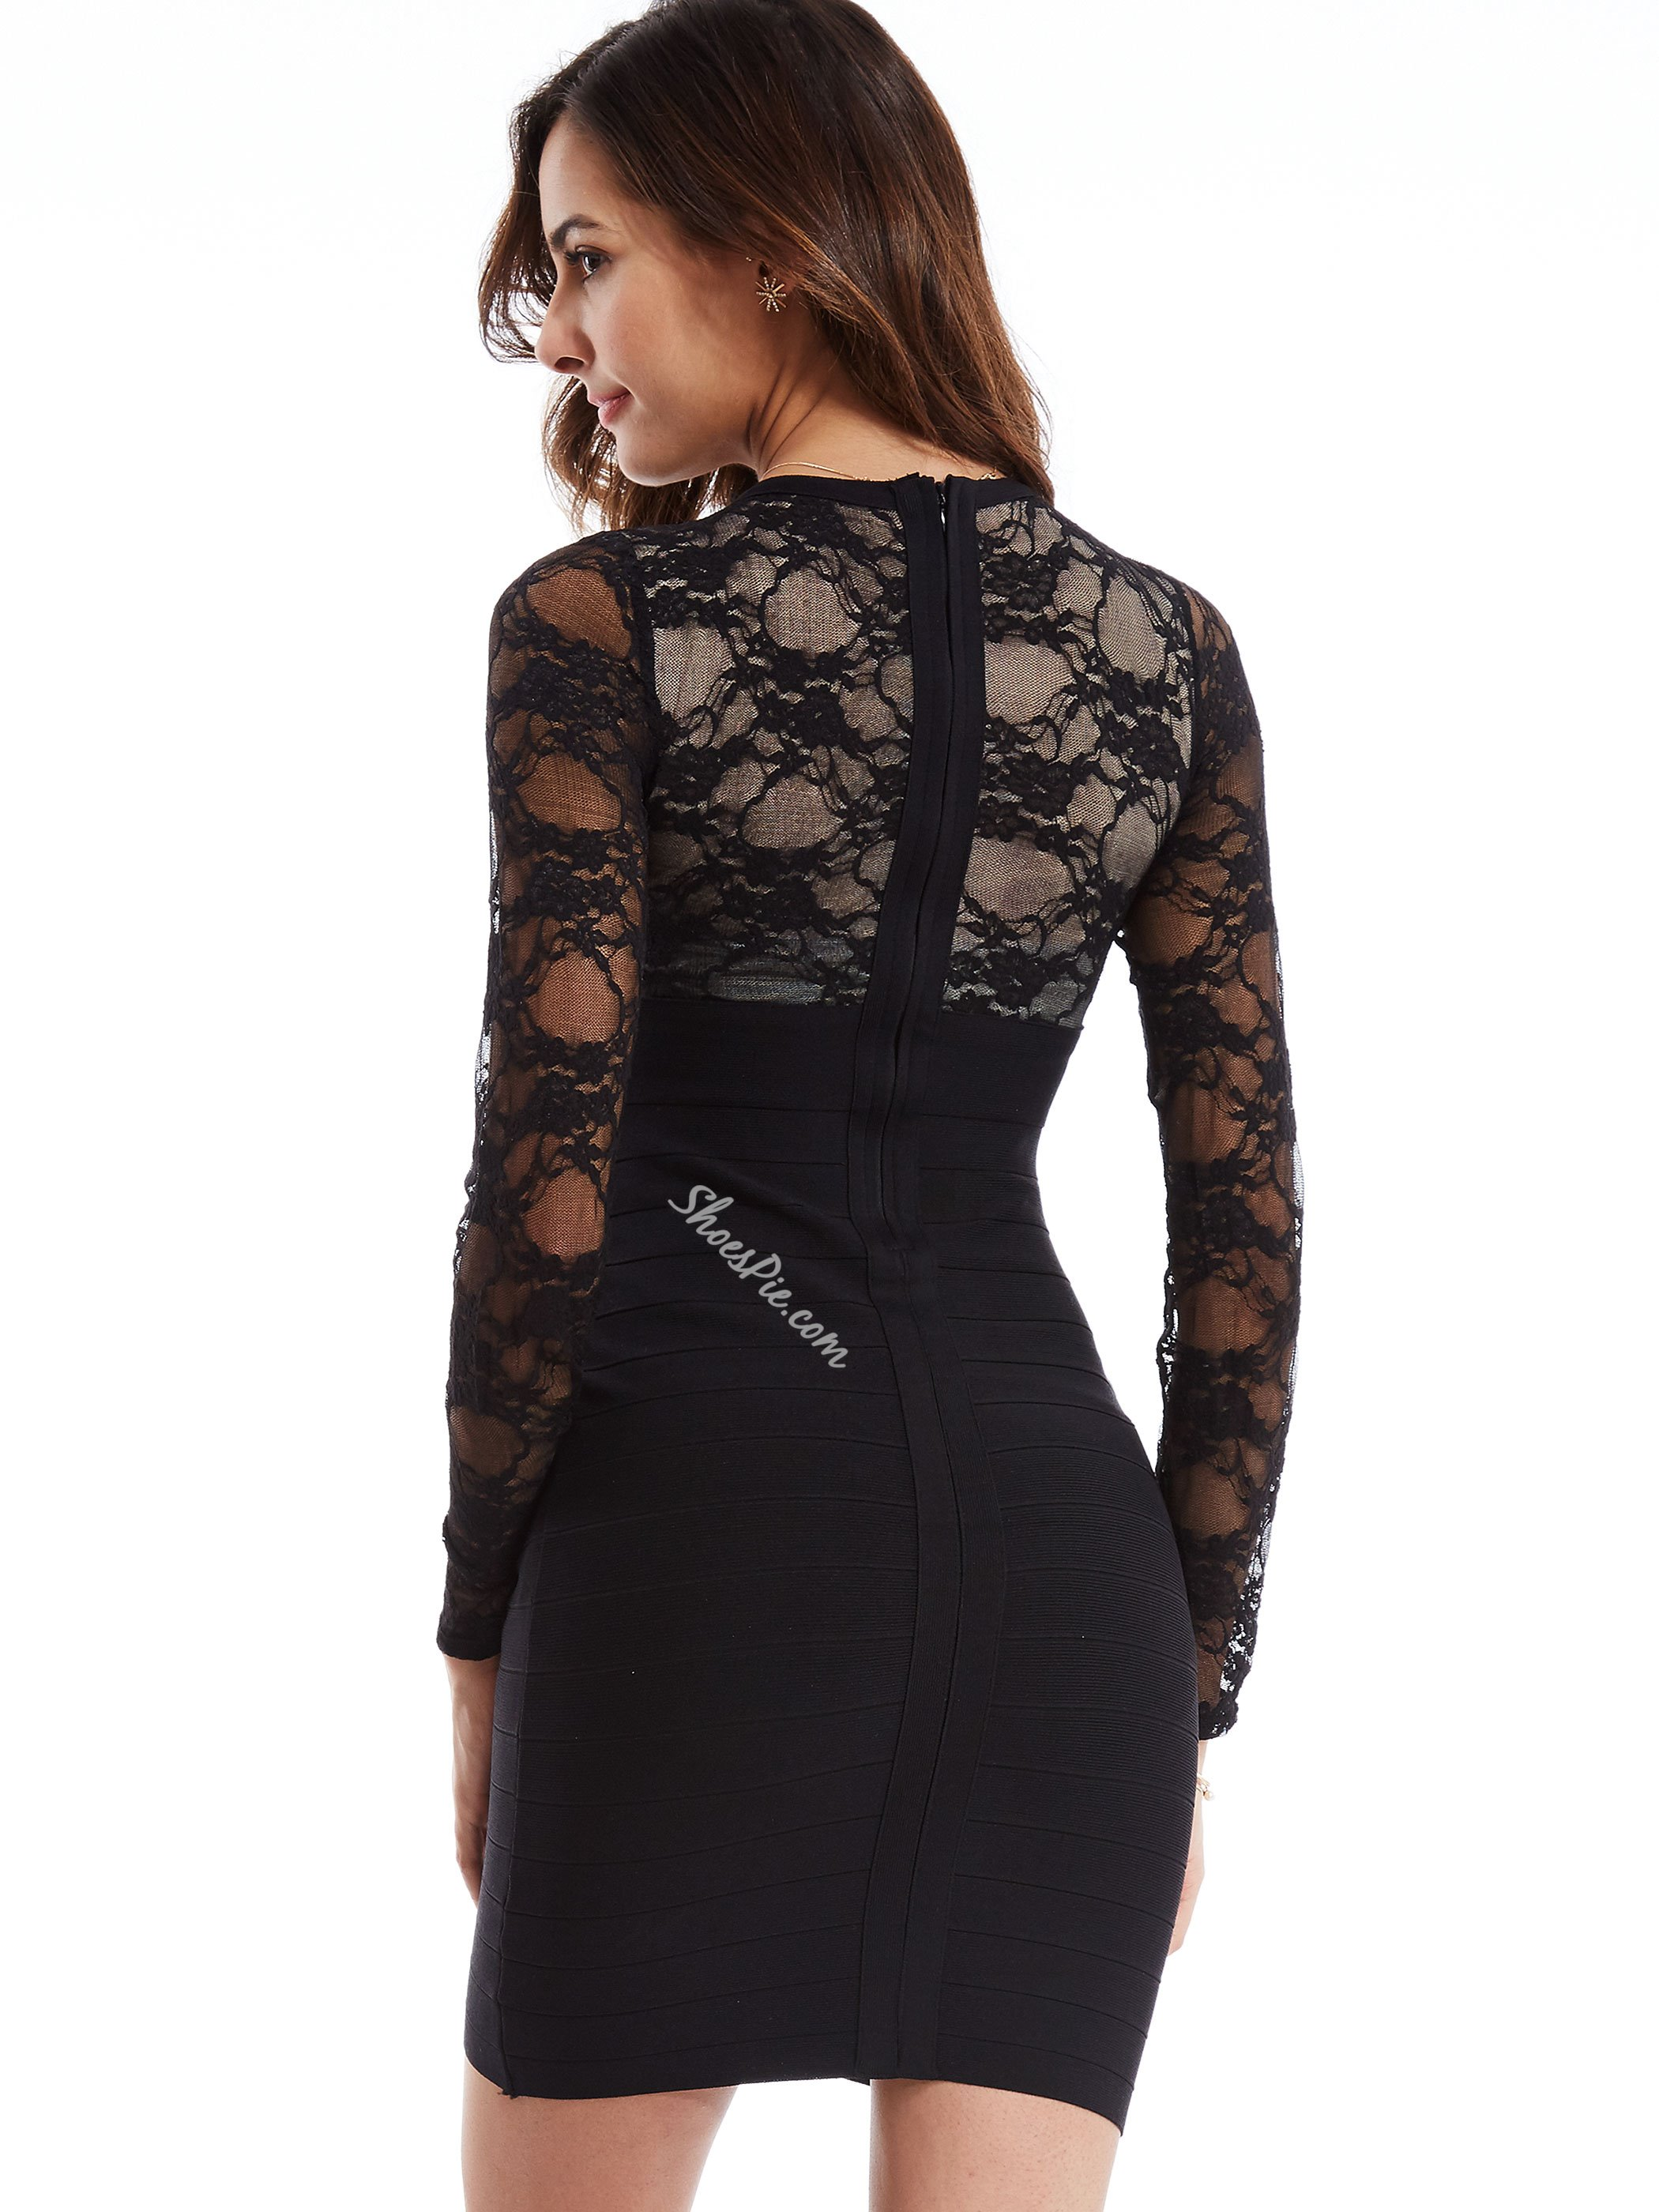 Plain Lace See-Through Sheath Dress